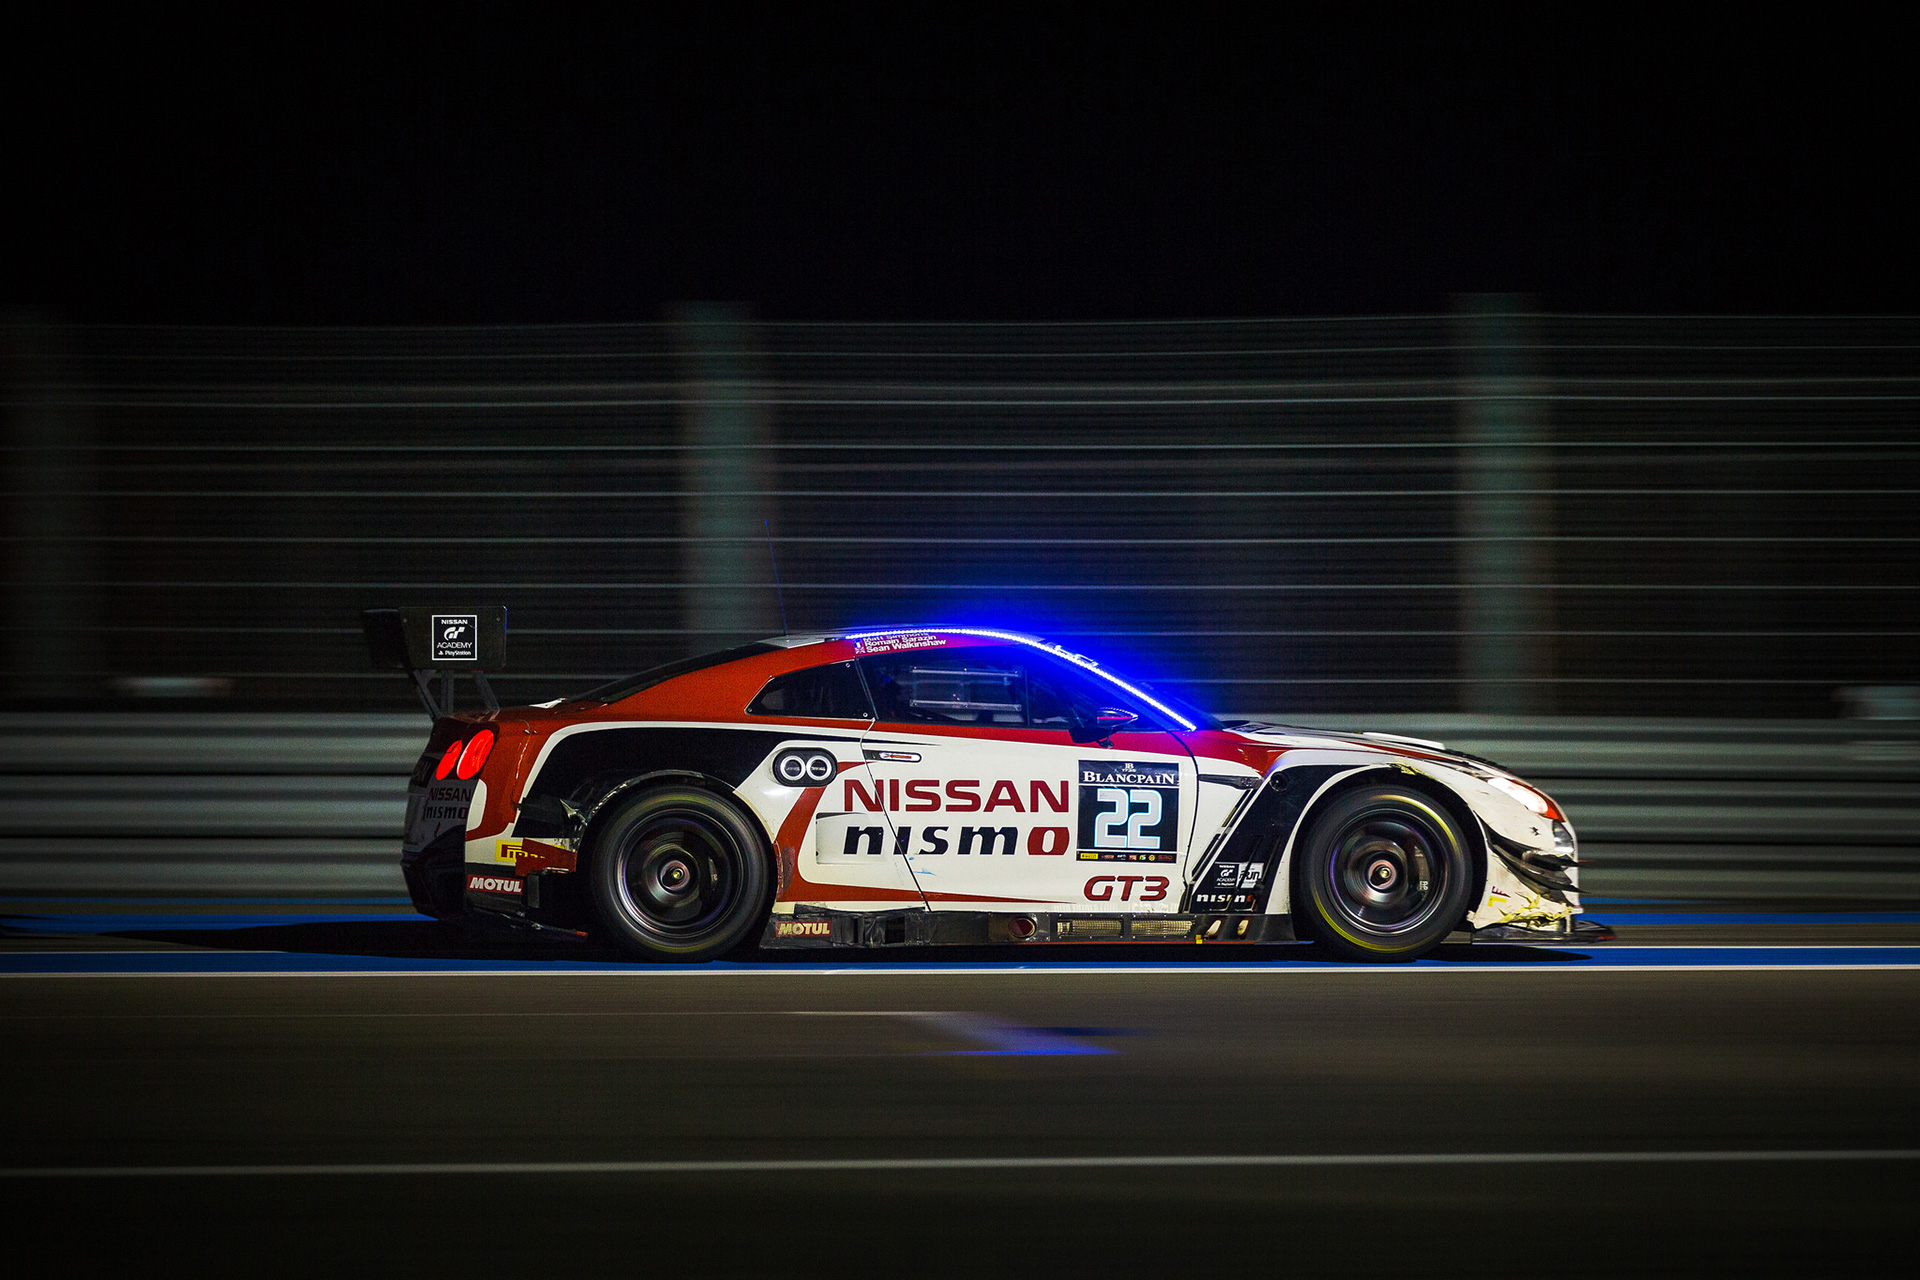 Sean returned to the track to hoist the No.22 Nissan into 14th place in Pro-Am and 37th overall.